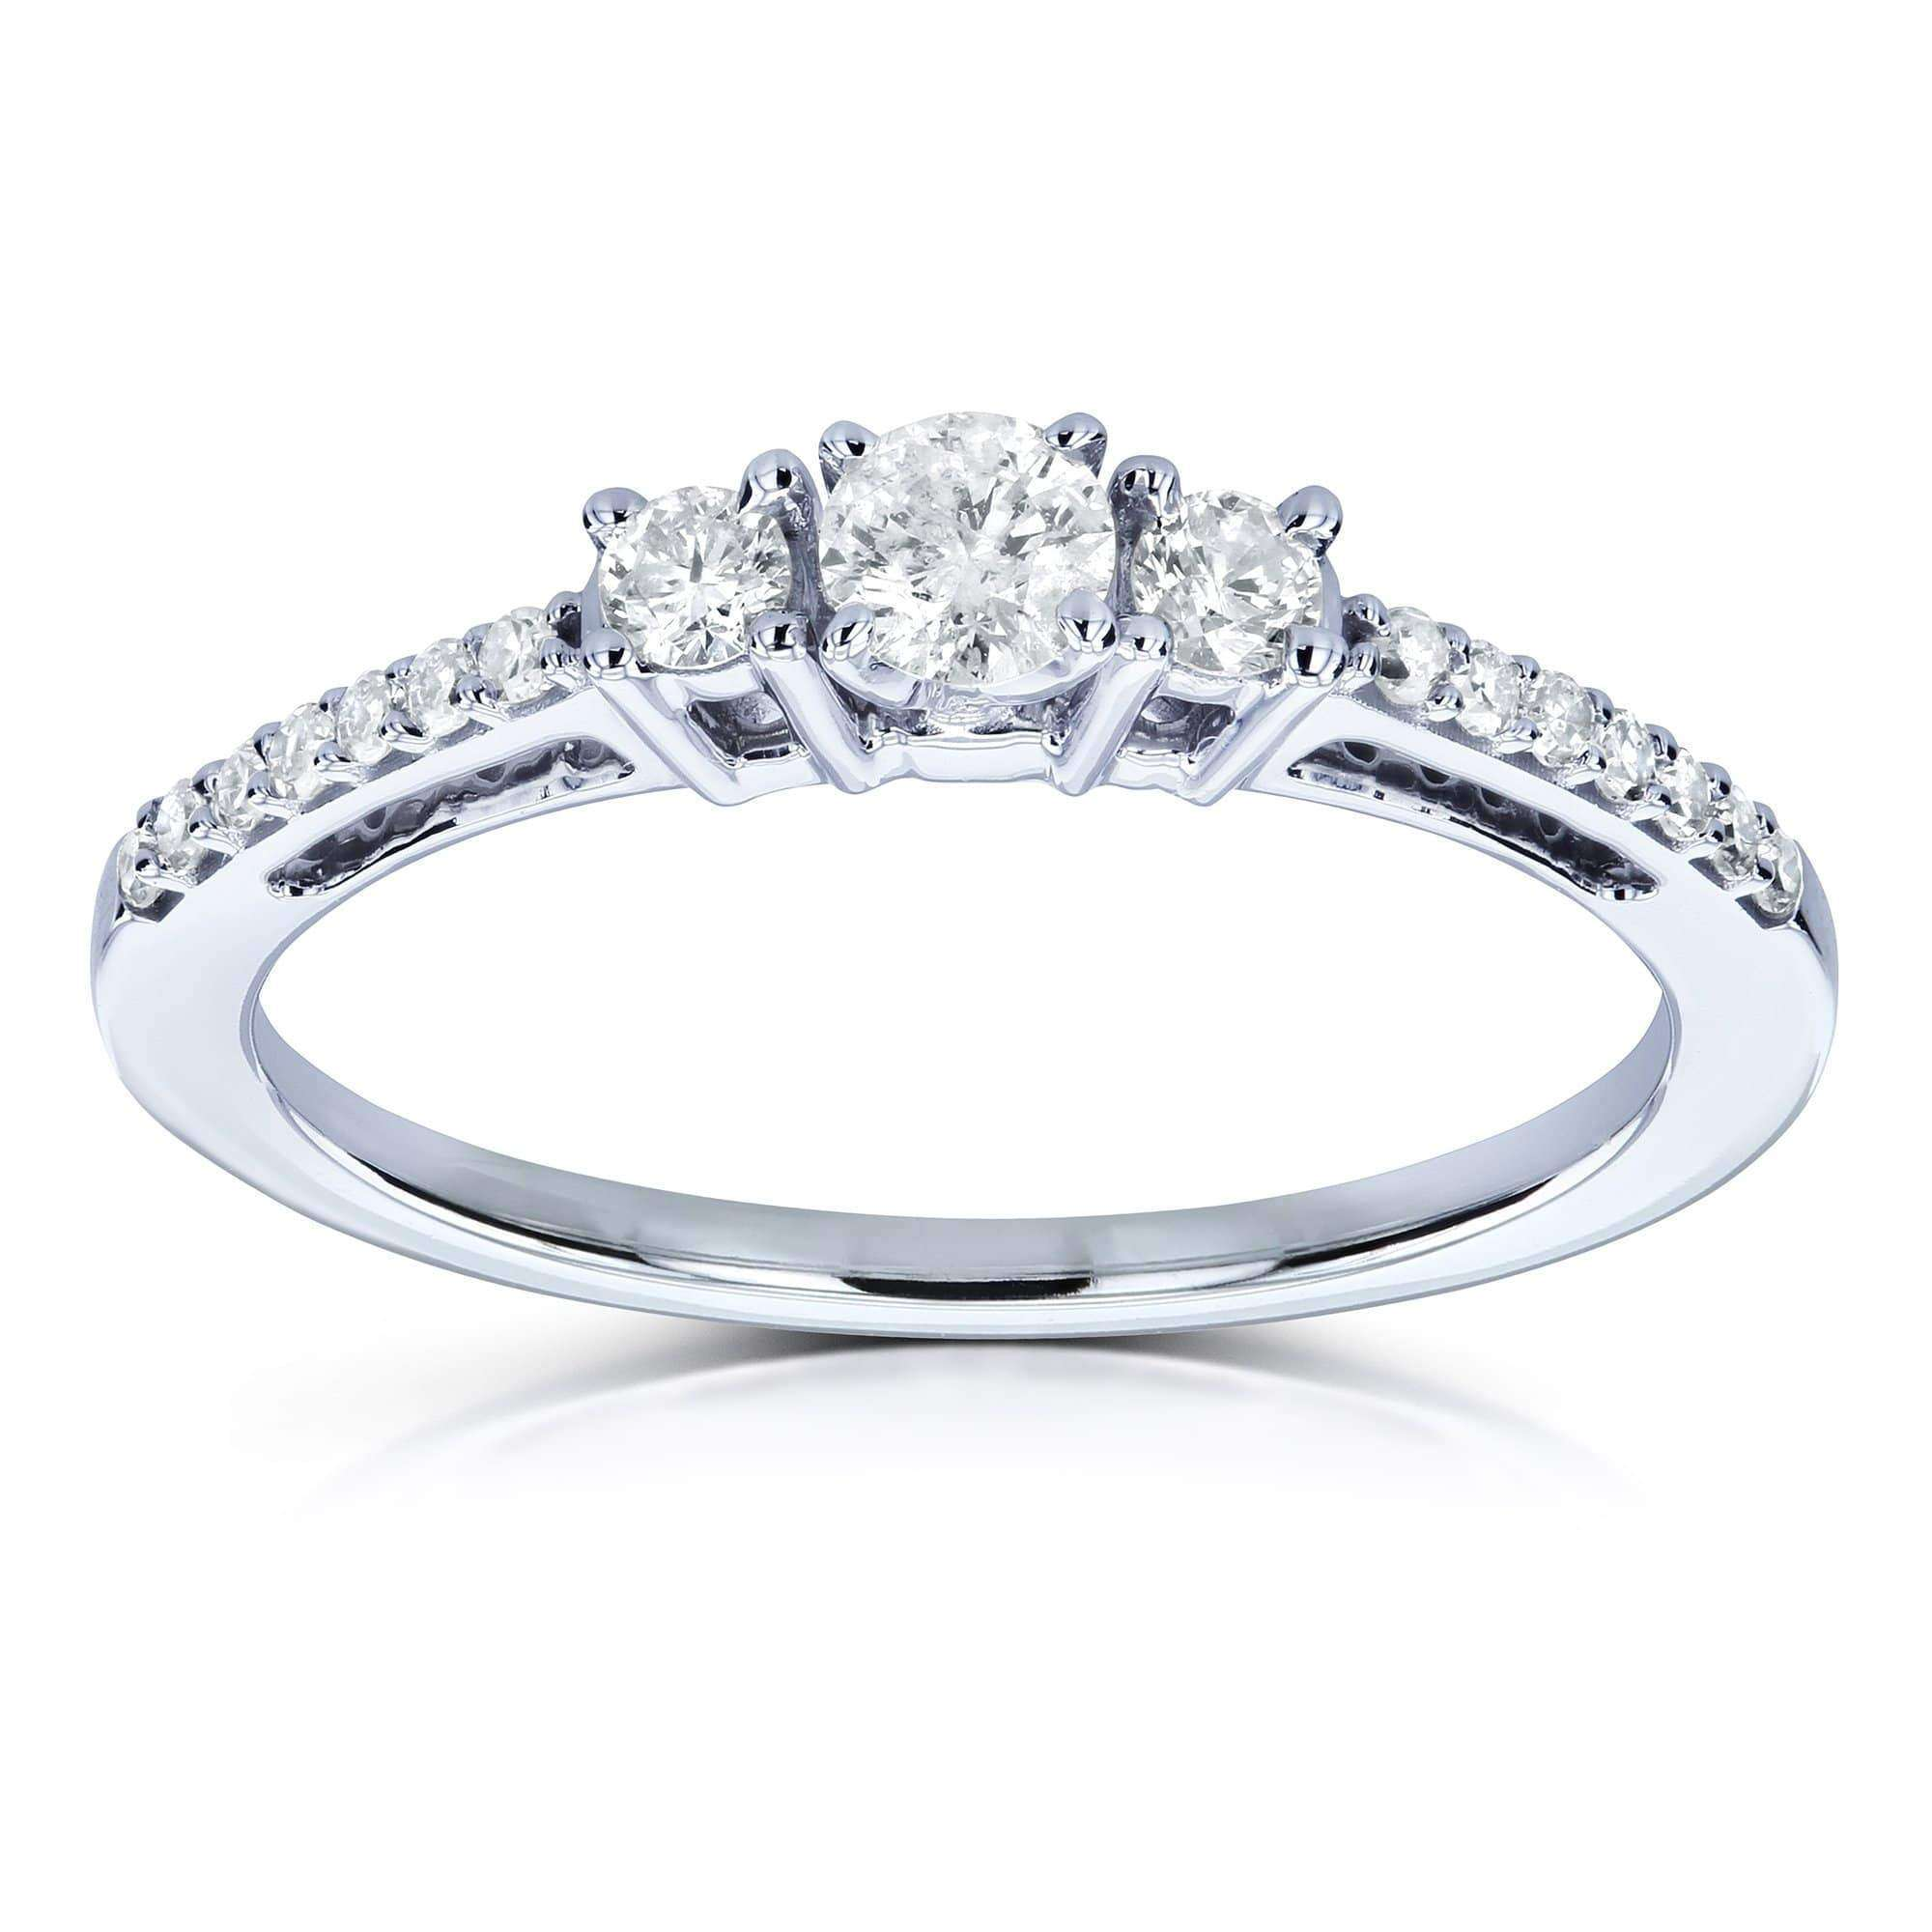 Top Three Stone Round Diamond Engagement Ring 1/4 Carat TW in 10k White Gold - 10